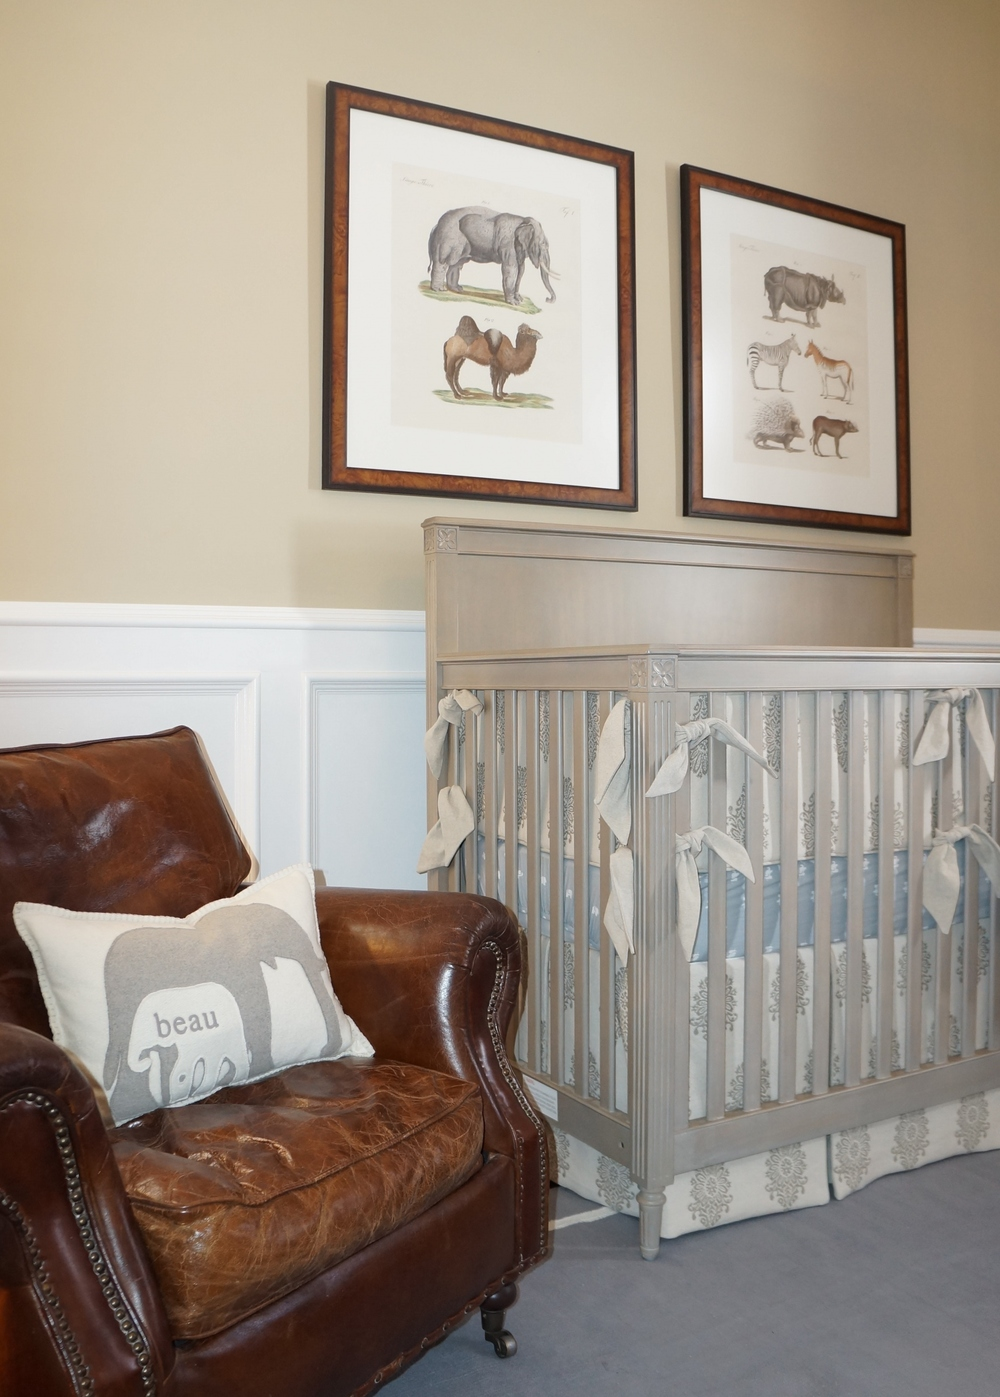 Beau's Safari-Inspired Nursery